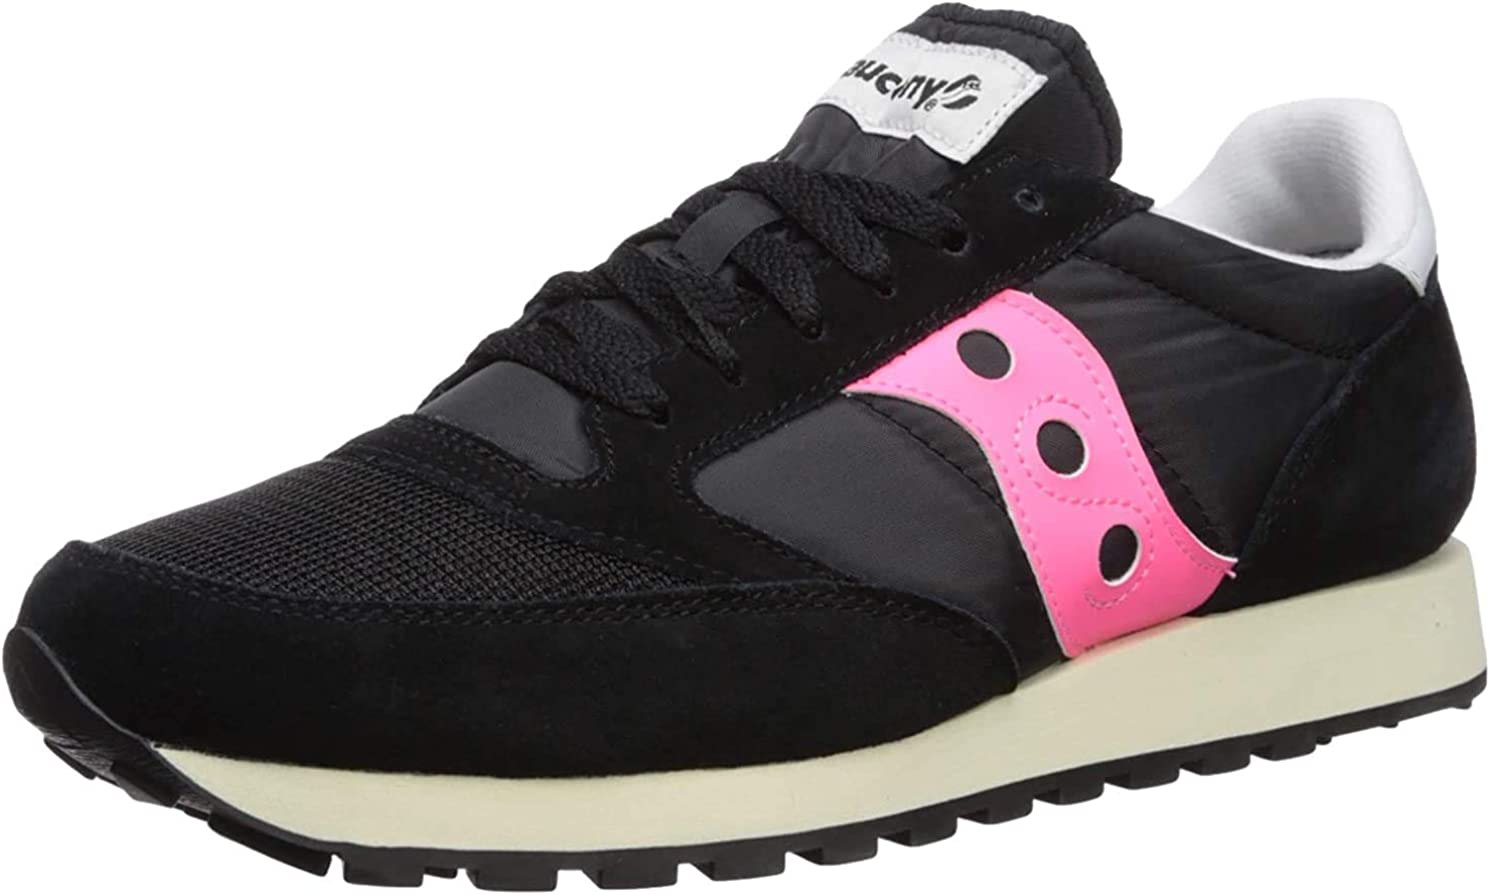 Saucony Men's Jazz Original Sneaker Black/Vizipink